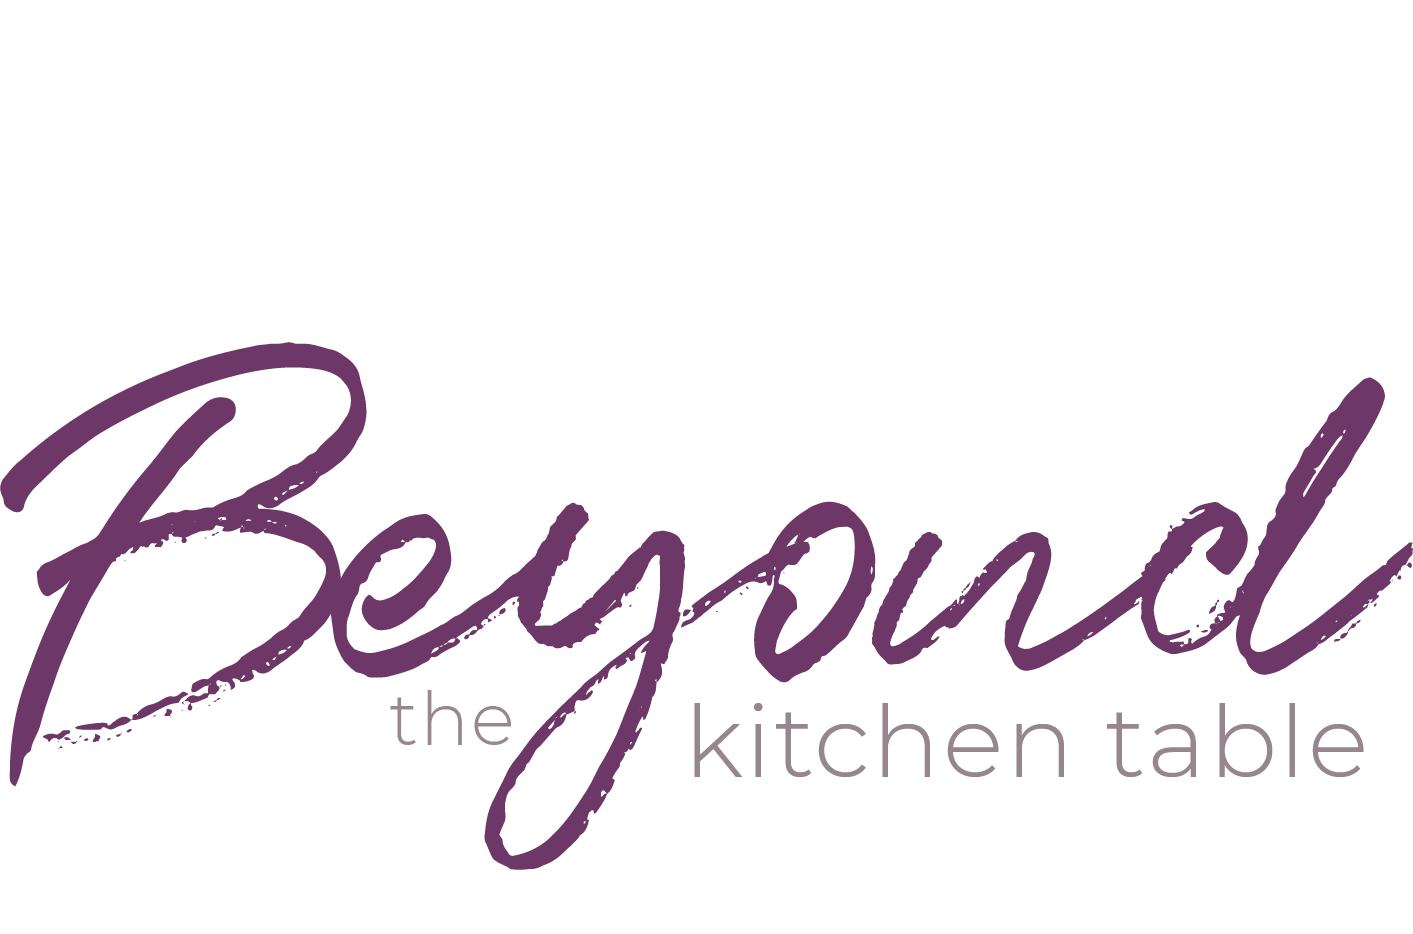 Beyond the kitchen table